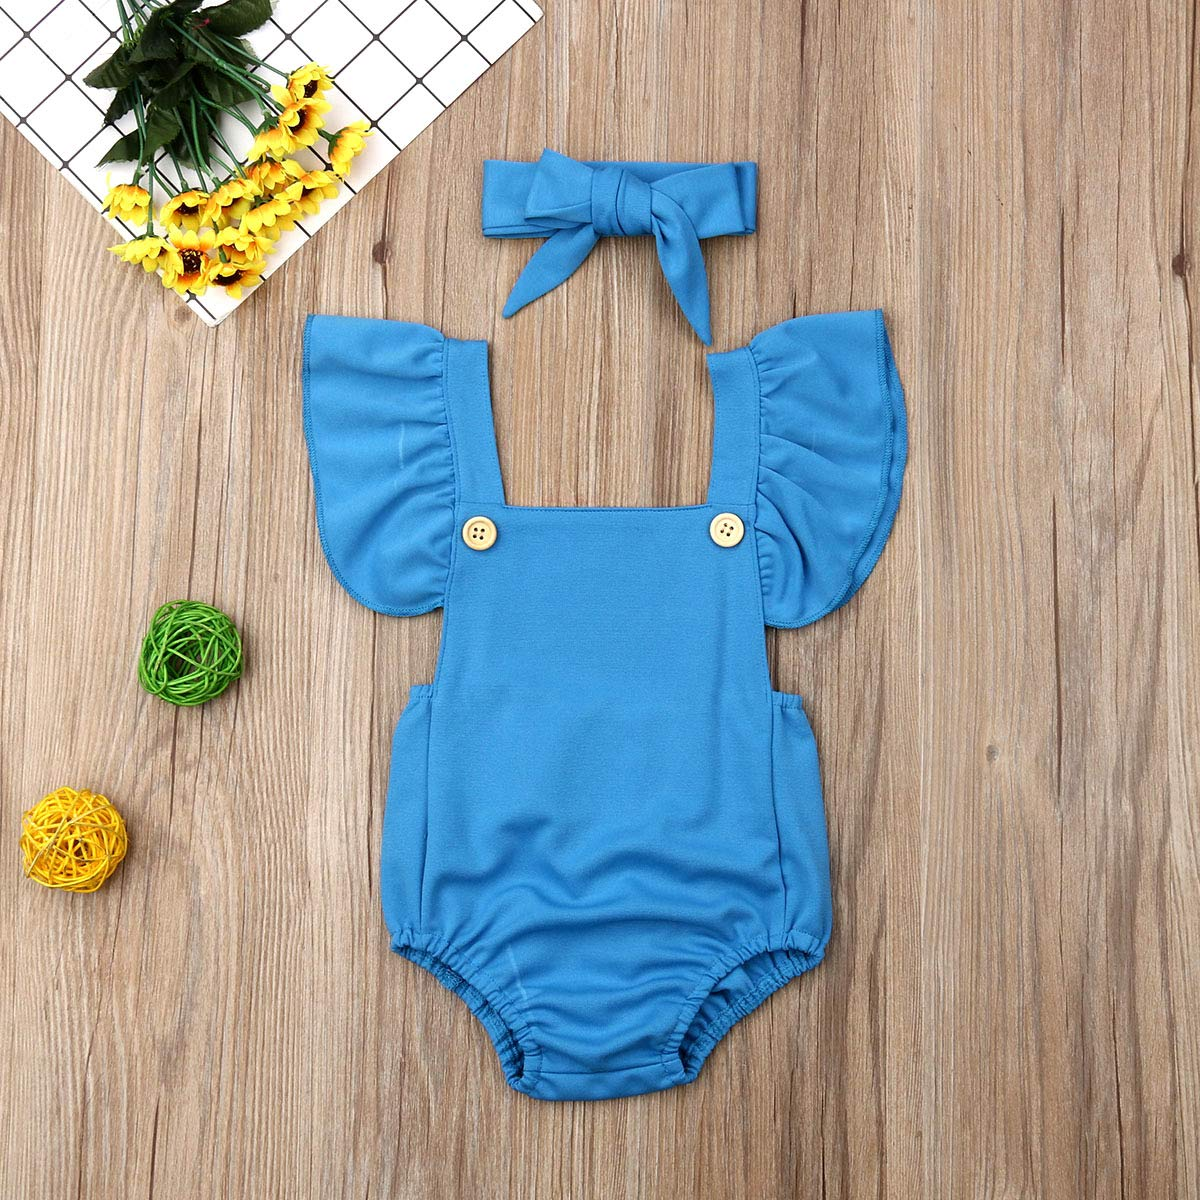 Dookingup Toddler Infant Baby Girls Fly Sleeve Polka Dots Romper Collar Buttons Jumpsuit Backless Bodysuit Summer Outfits